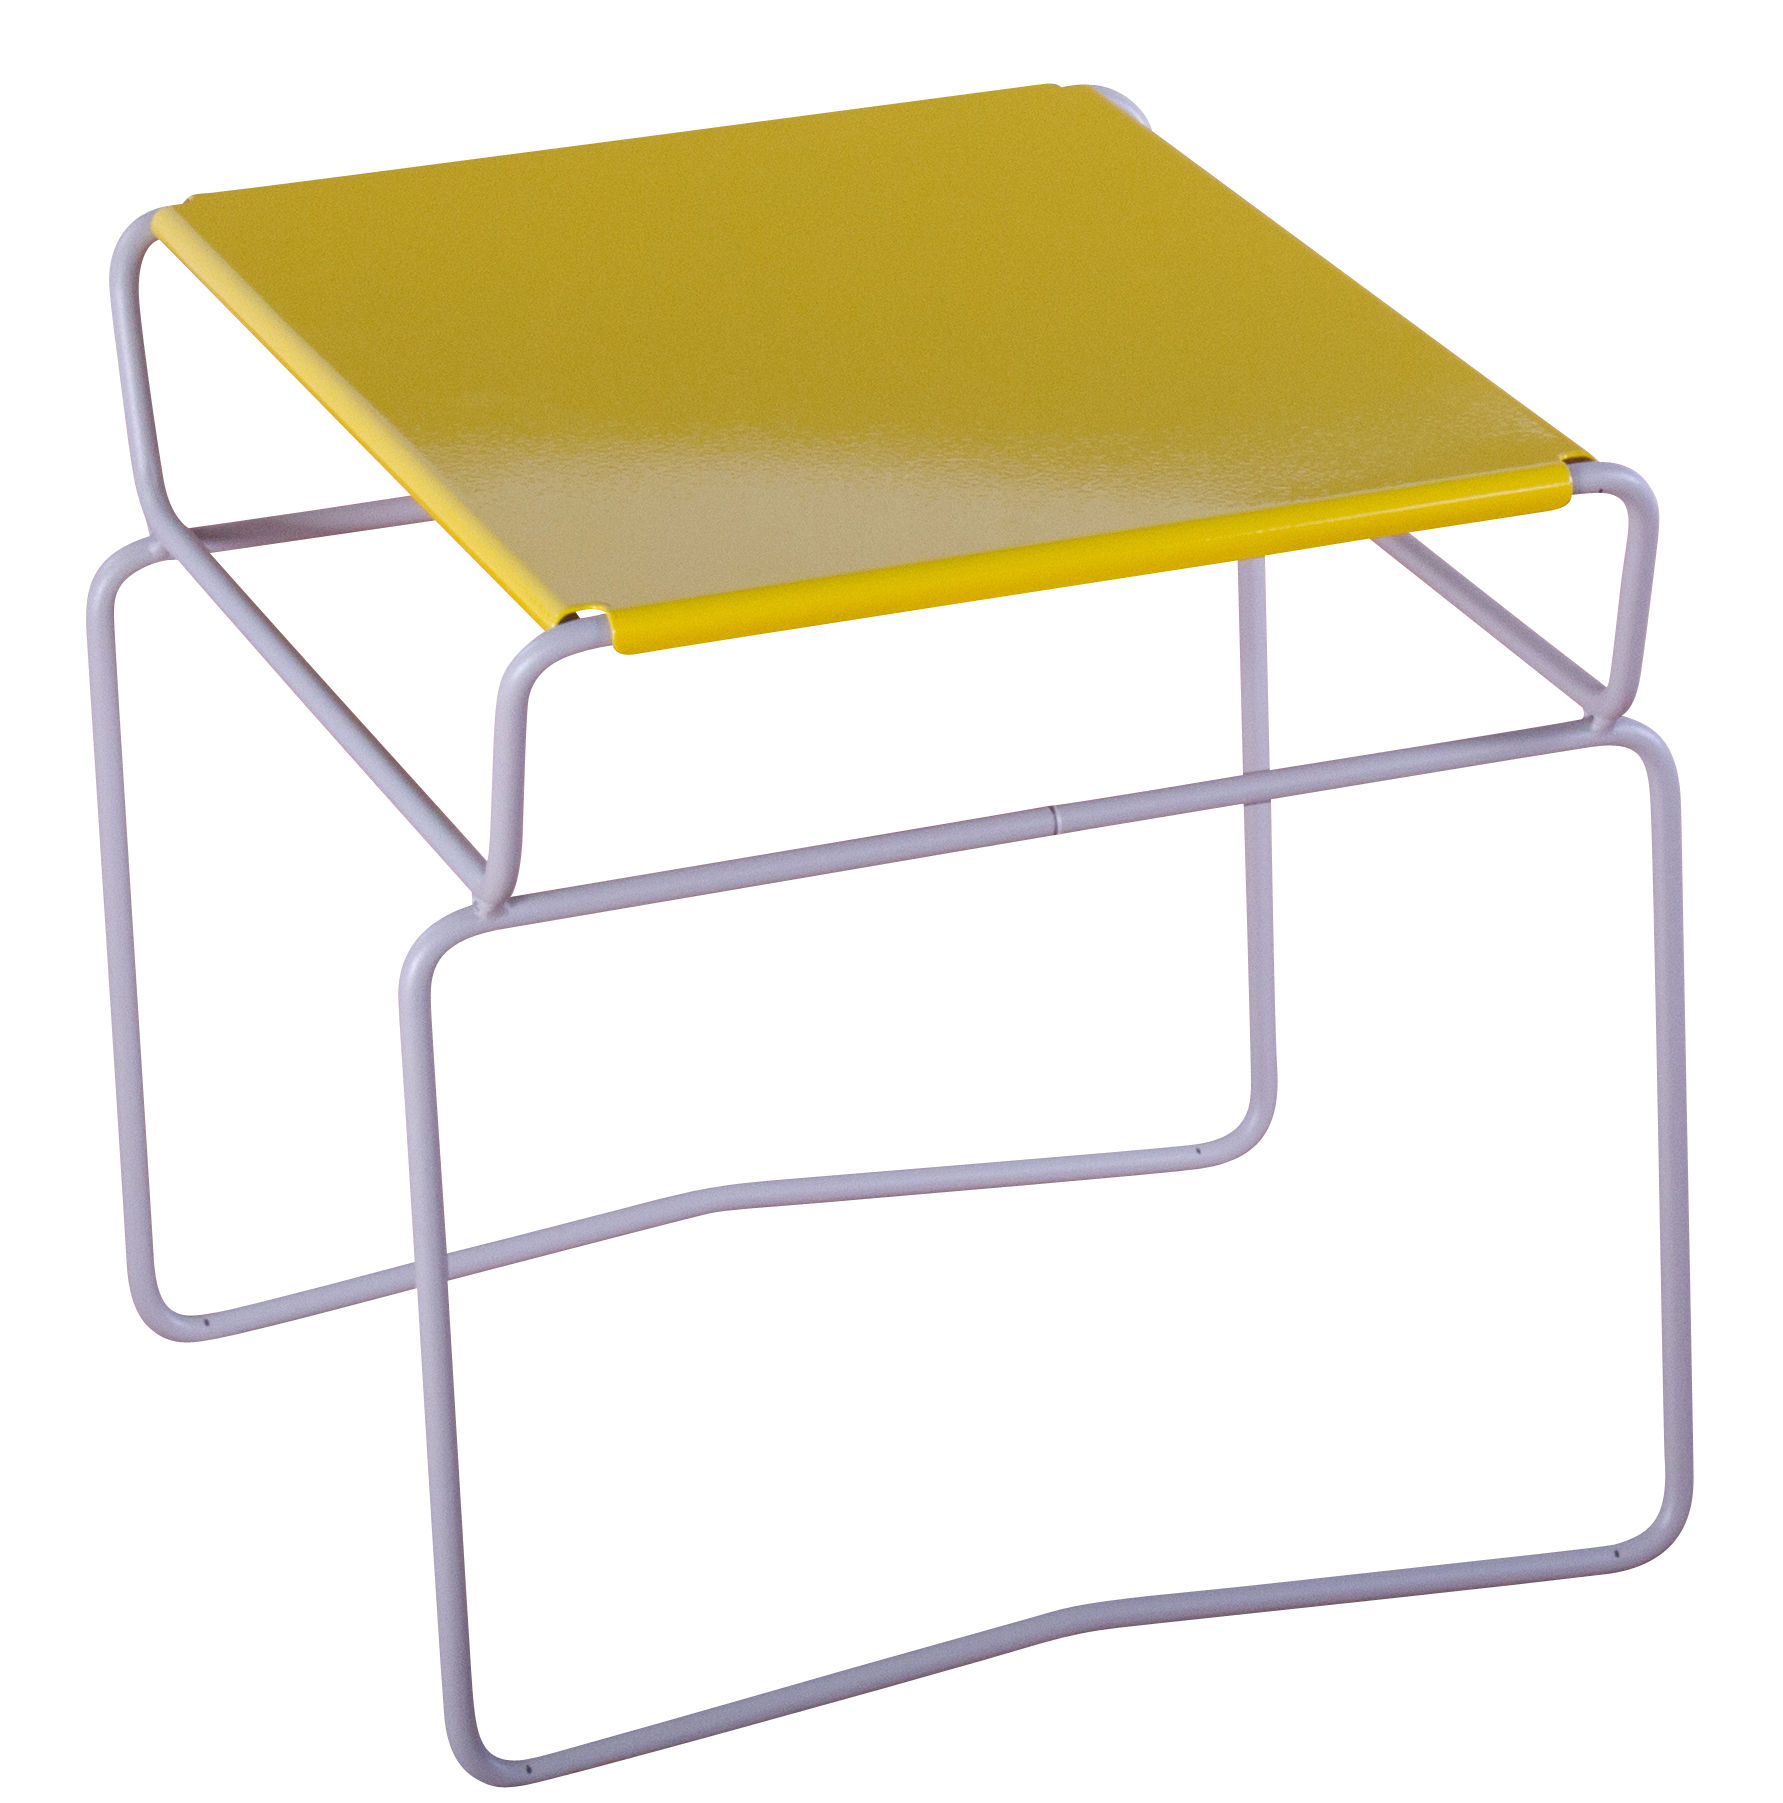 Furniture - Coffee Tables - Fil  Confort Coffee table by AA-New Design - Yellow top / Grey structure - Epoxy lacquered steel